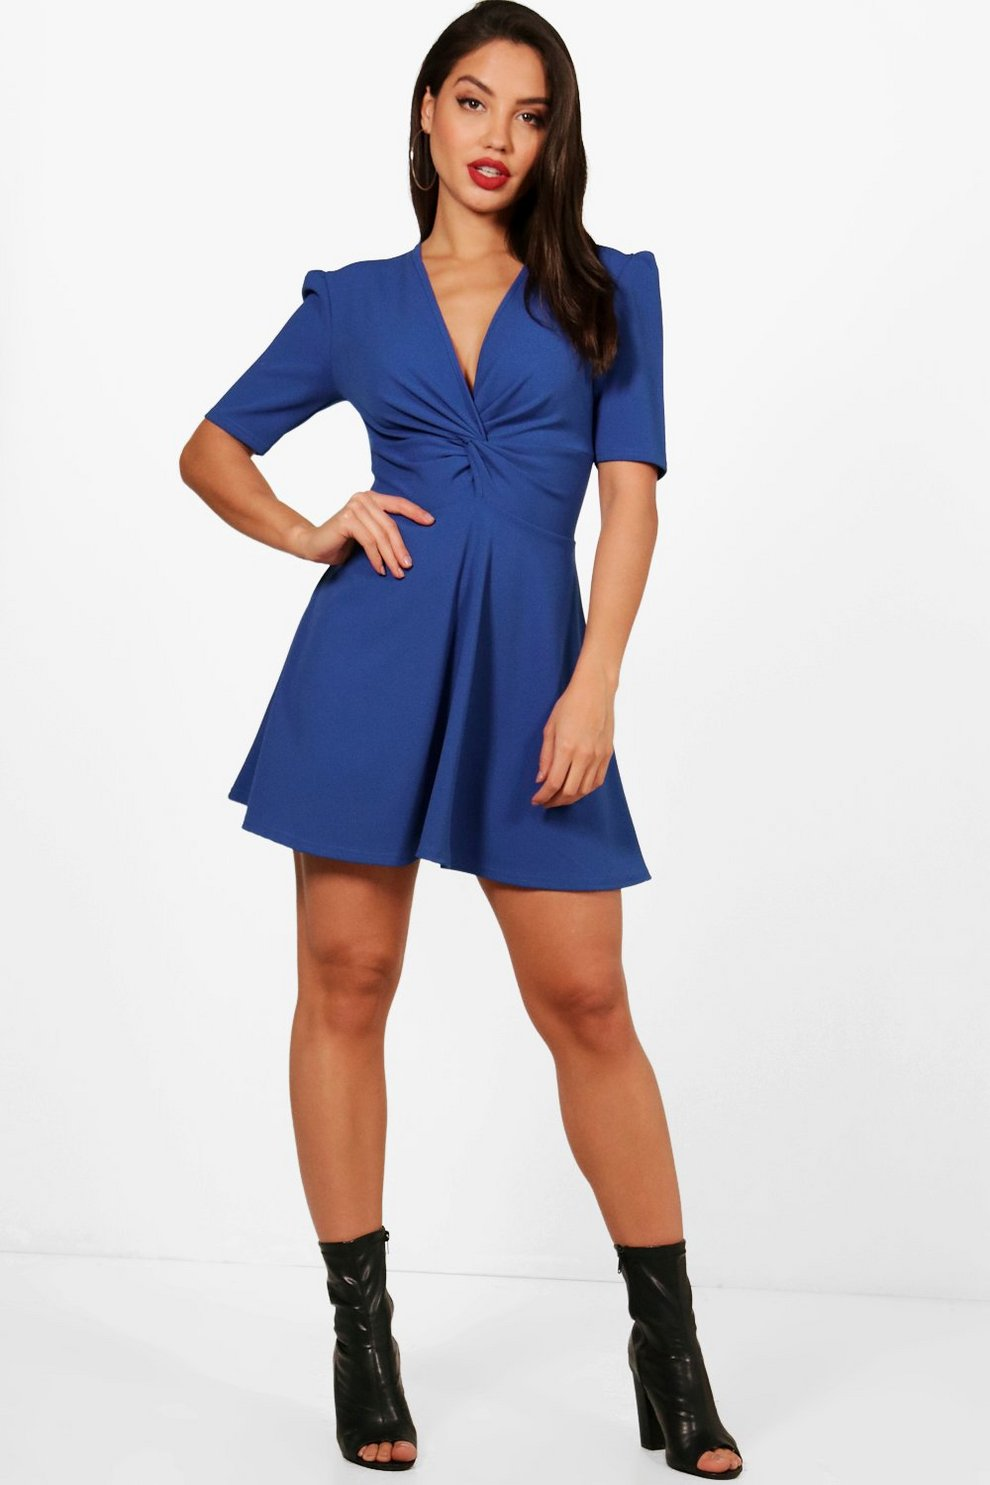 Sale Official Boohoo Flared Sleeve Knot Front Skater Dress Buy Cheap Comfortable New Sale Fashionable zAHFiA0N